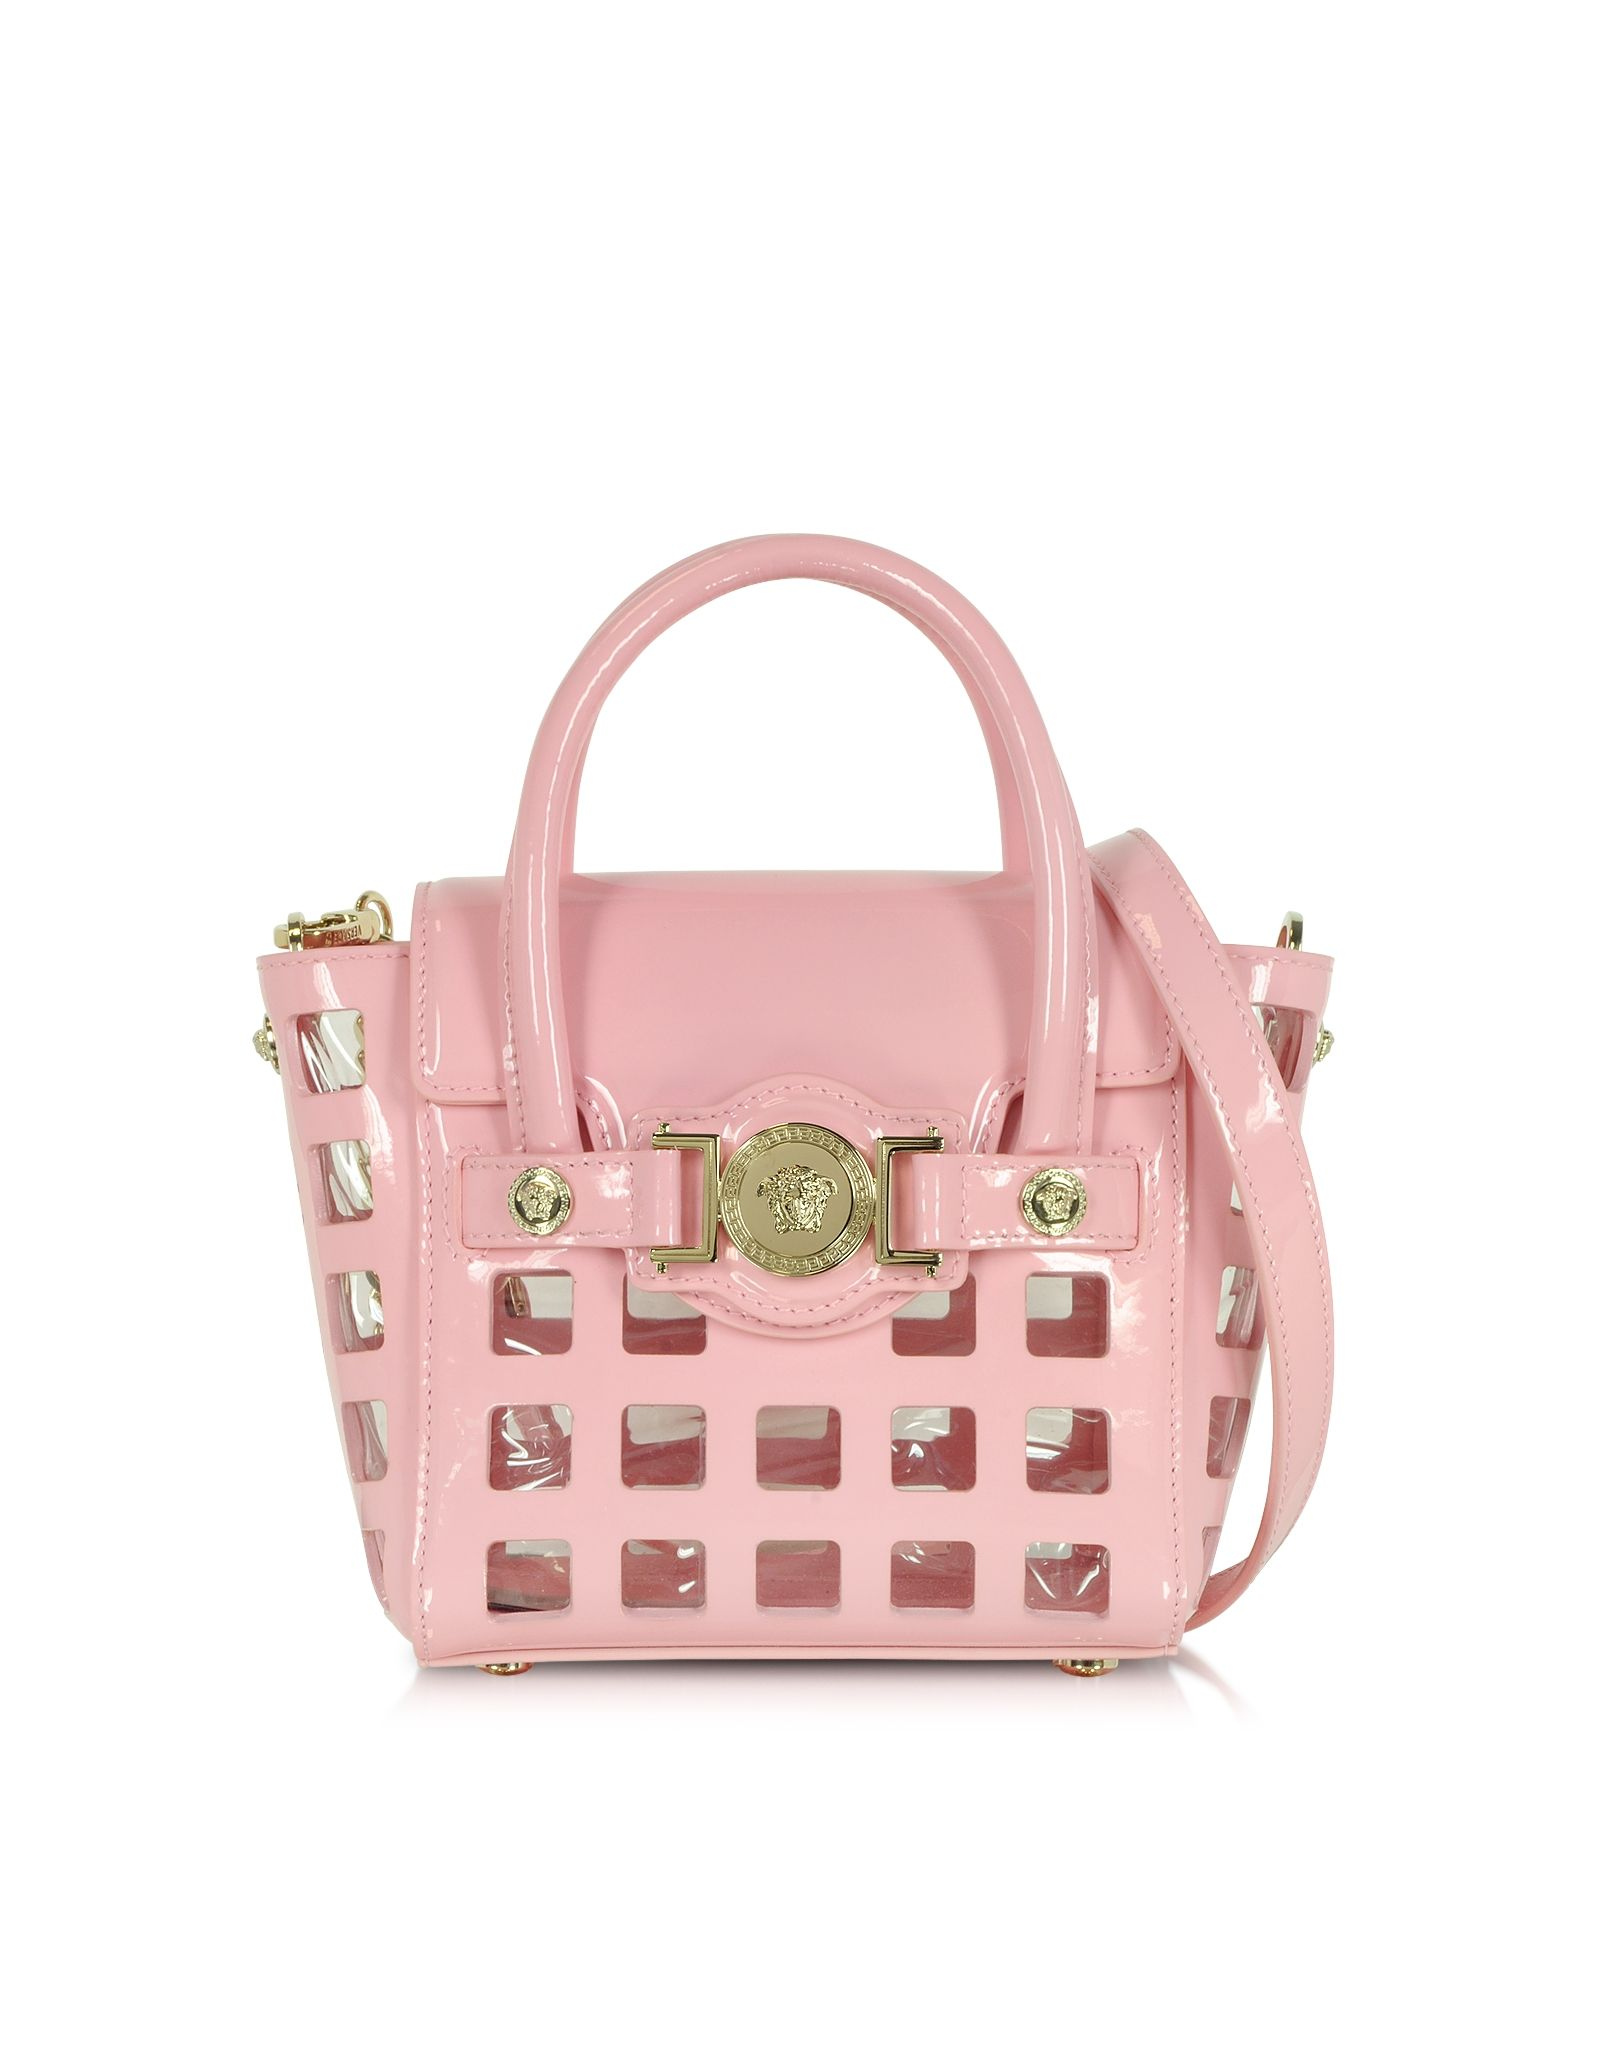 ccbee871e1ae Versace L. Signature Pink Patent Leather Small Shoulder Bag ...